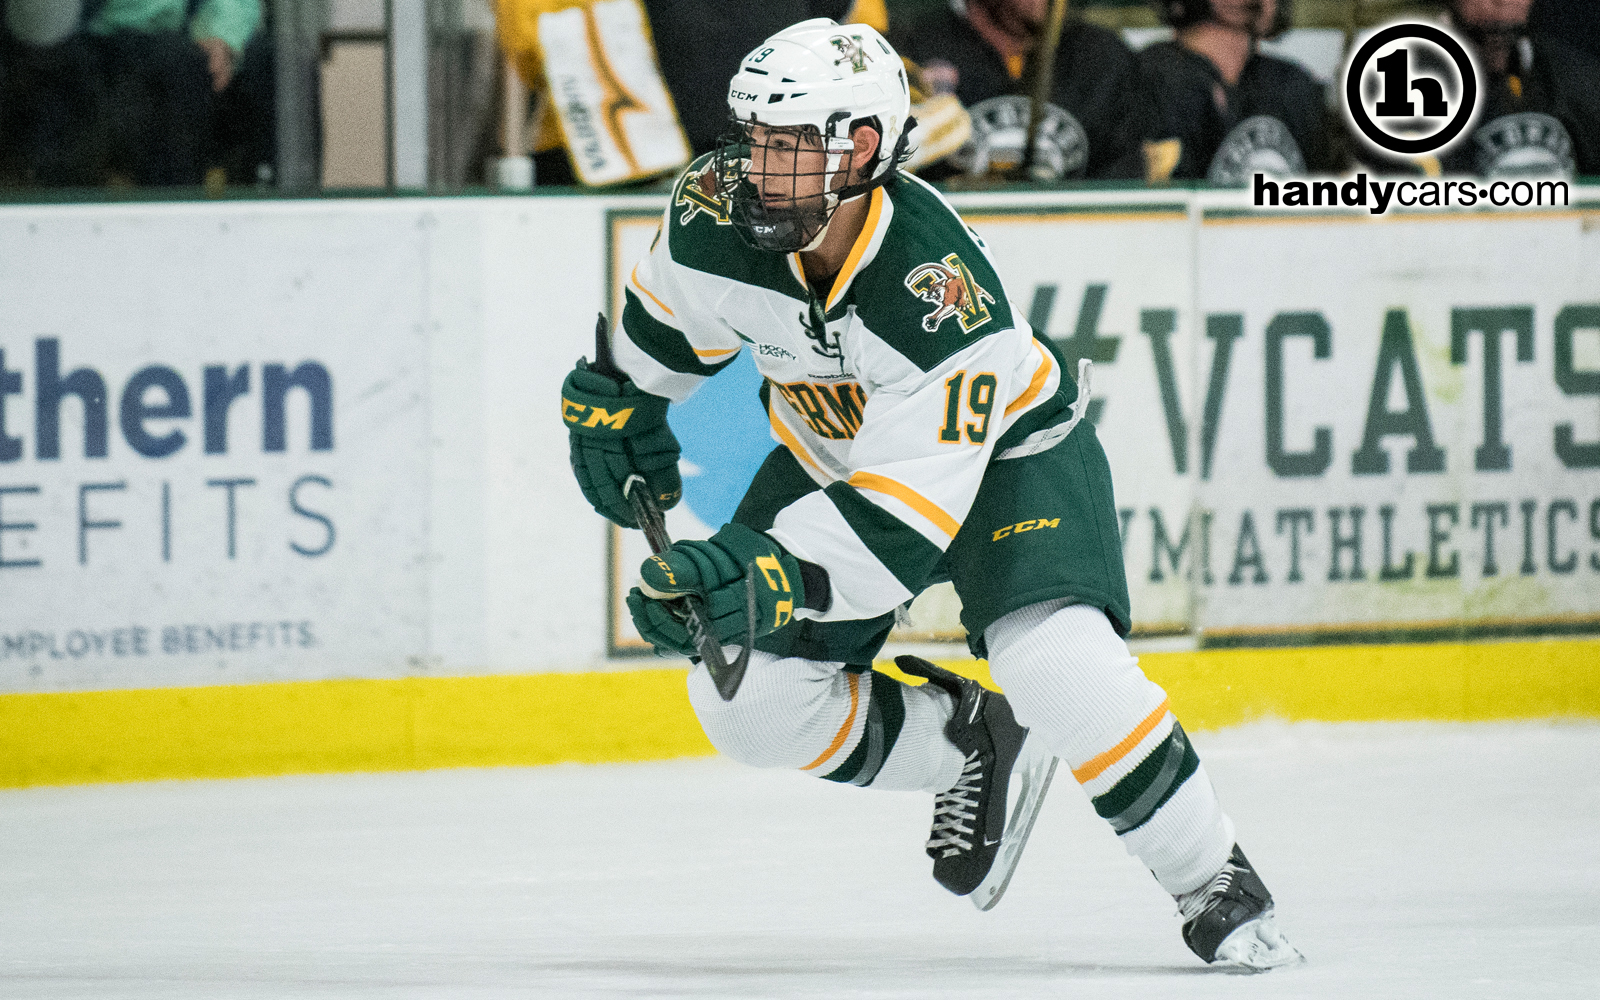 Weekend Preview: Vermont Catamounts – The Northeastern Hockey Blog